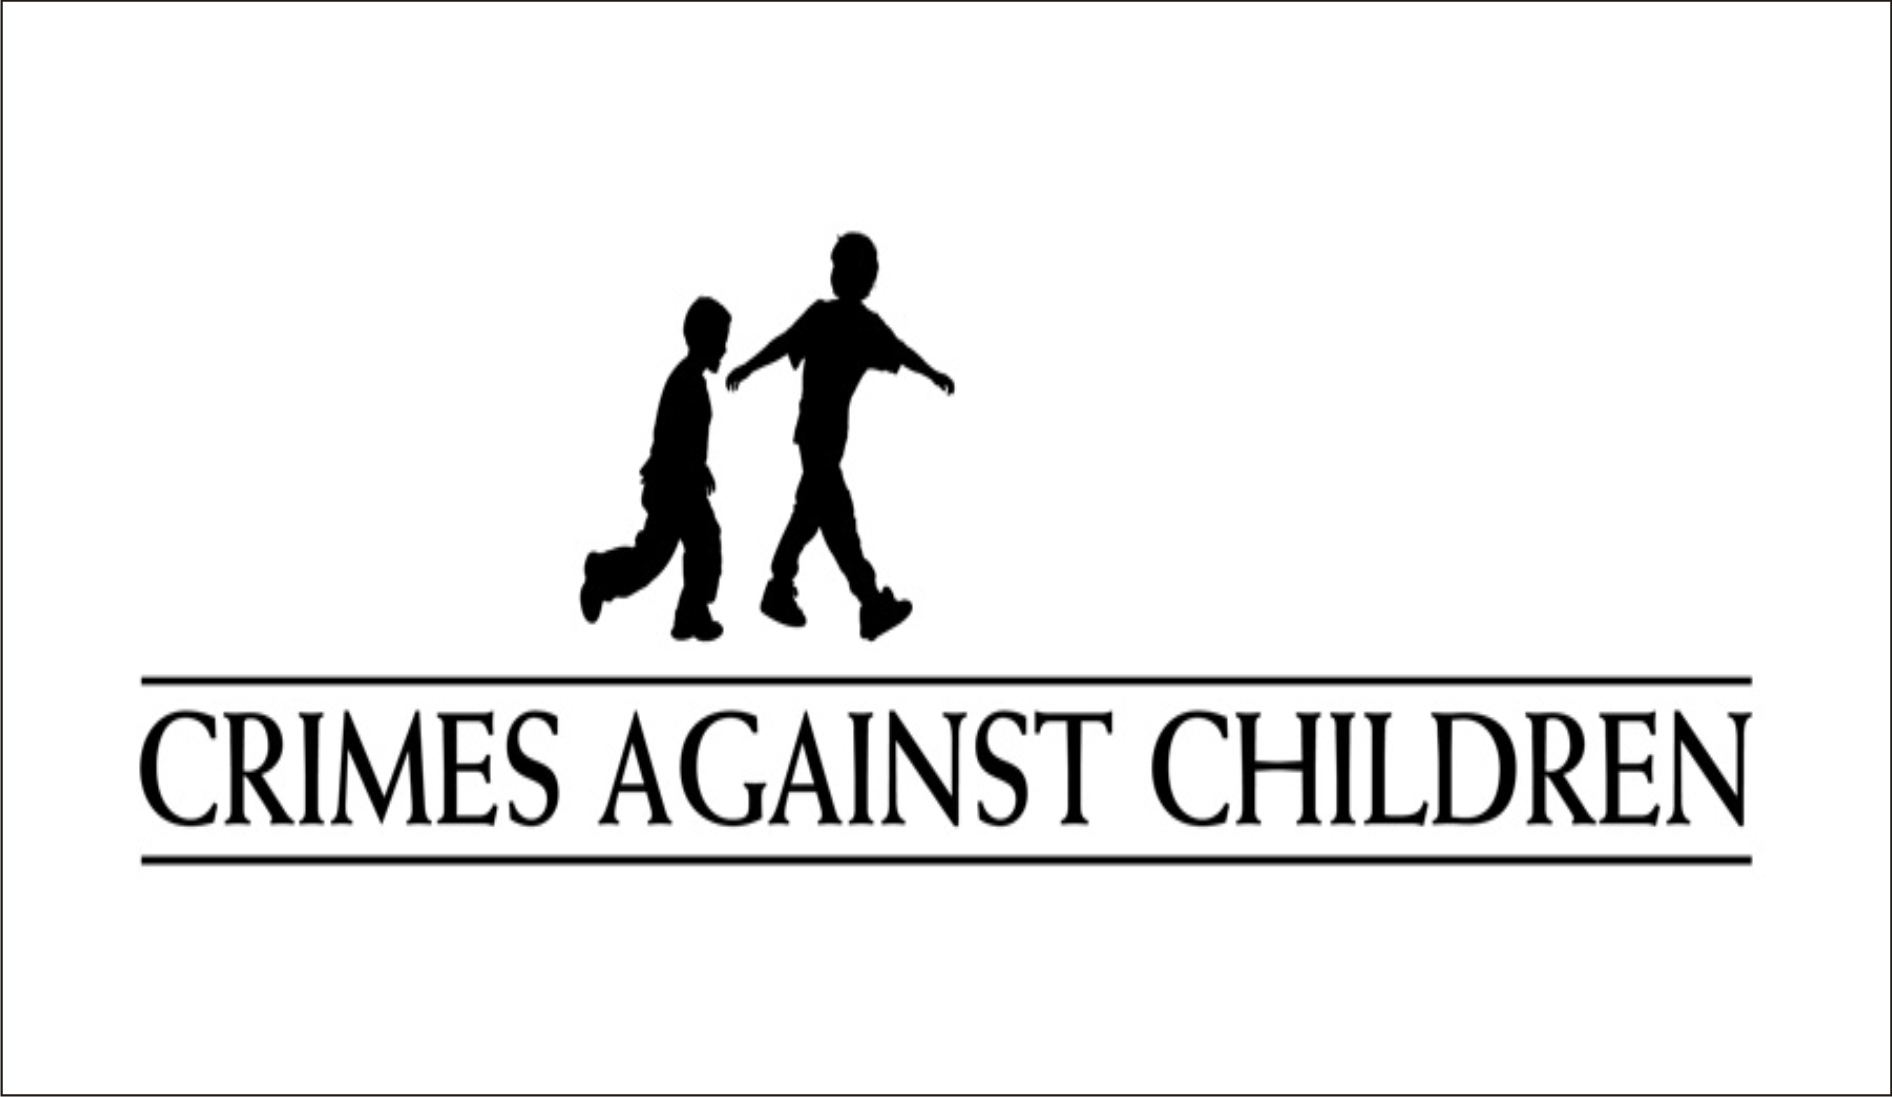 Child sexual abuse laws in India